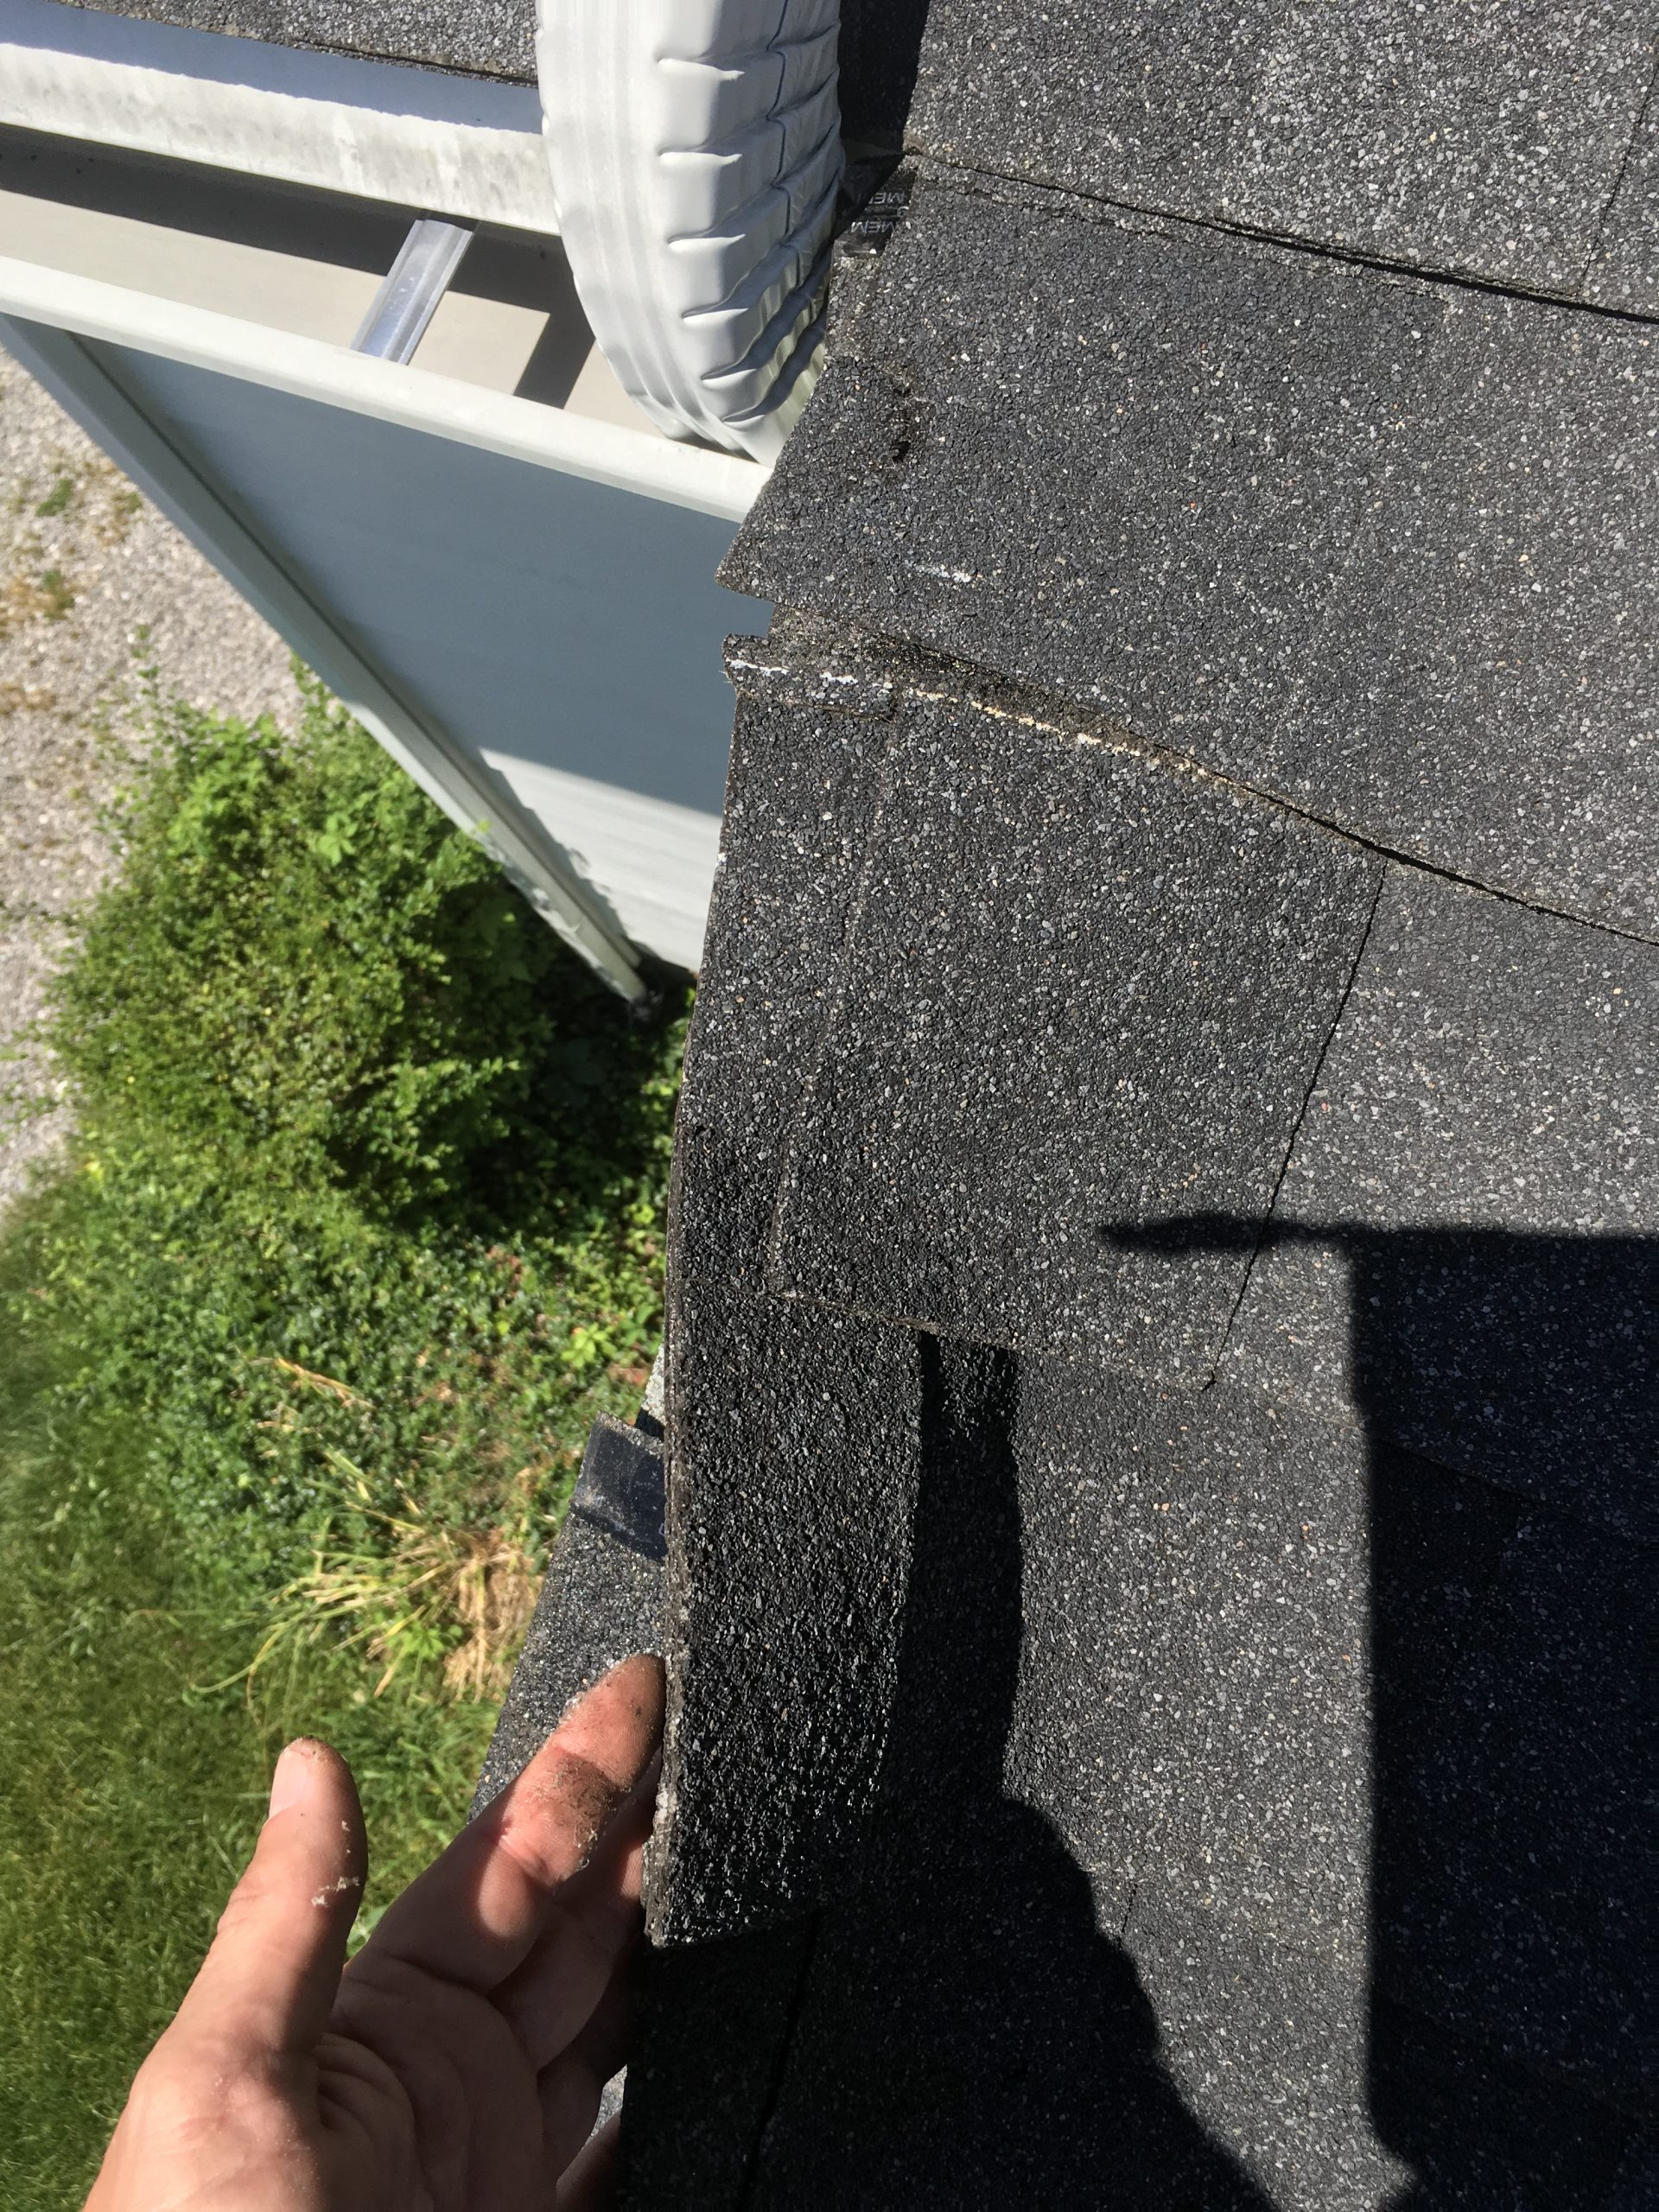 This is a view of the roof  edge with black shingles.